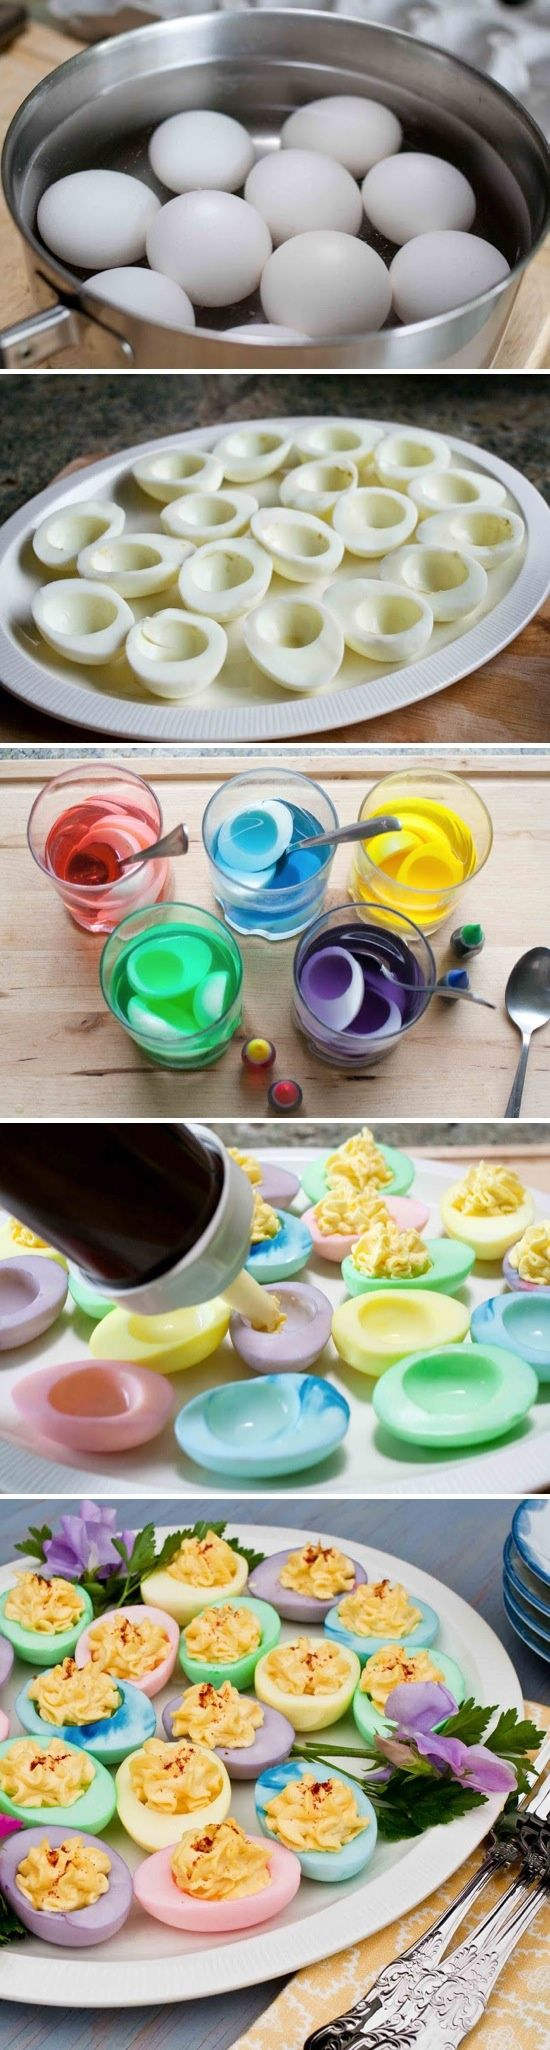 Good idea for Mardi Gras - purple and yellow - pjy     Tye Dyed boiled eggs. I'm making this for Friendsgiving this year.